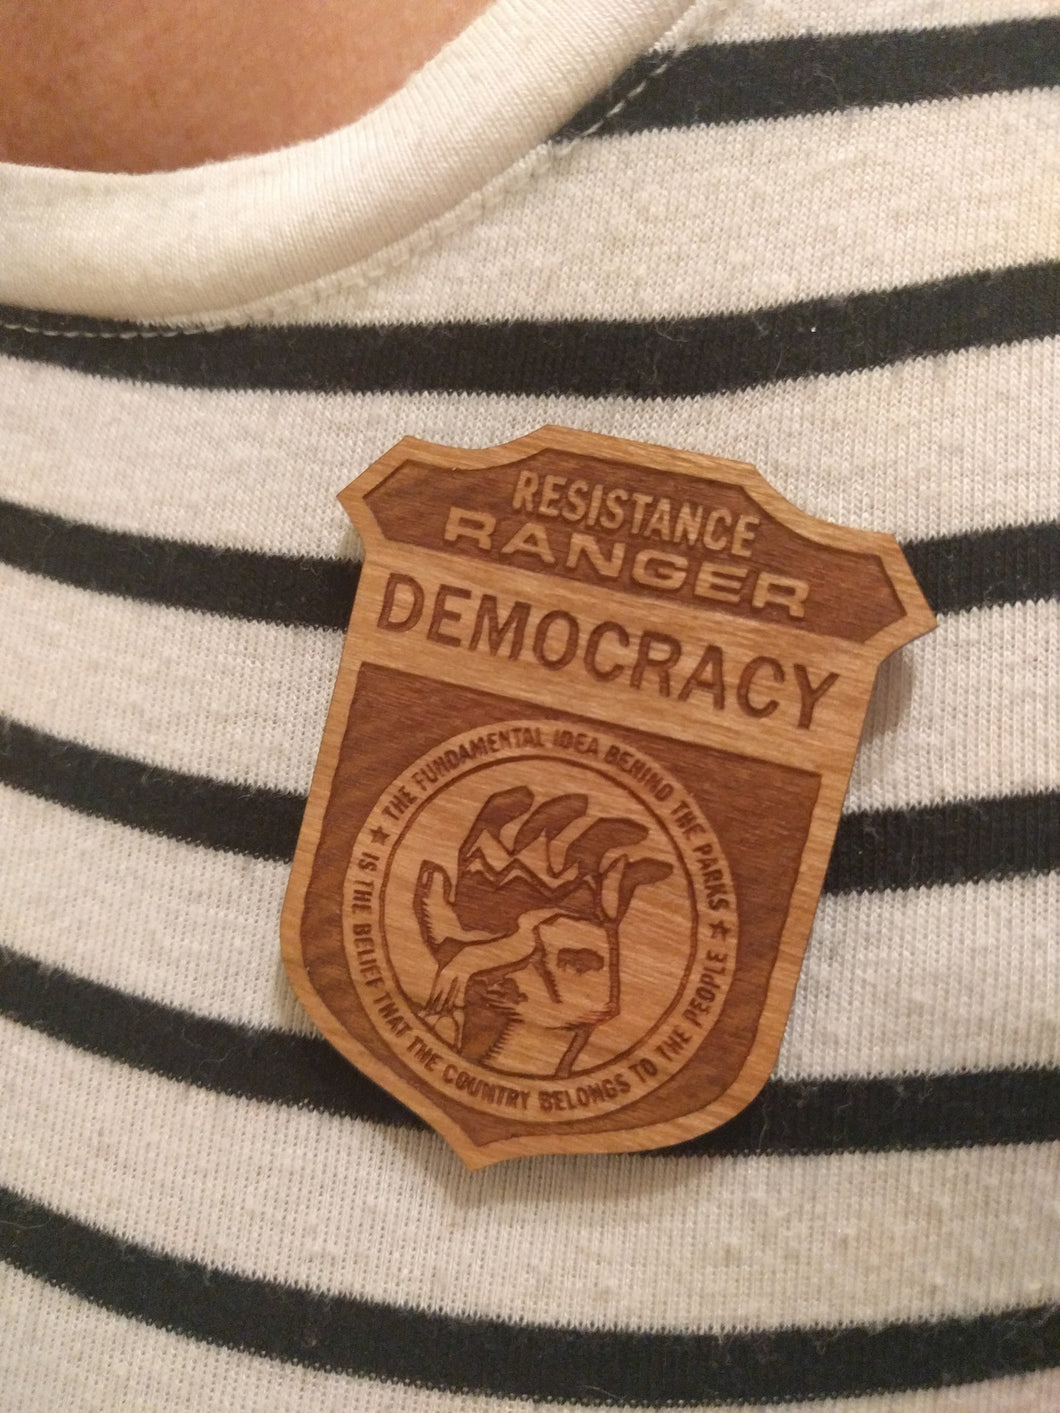 Resistance Ranger Badge